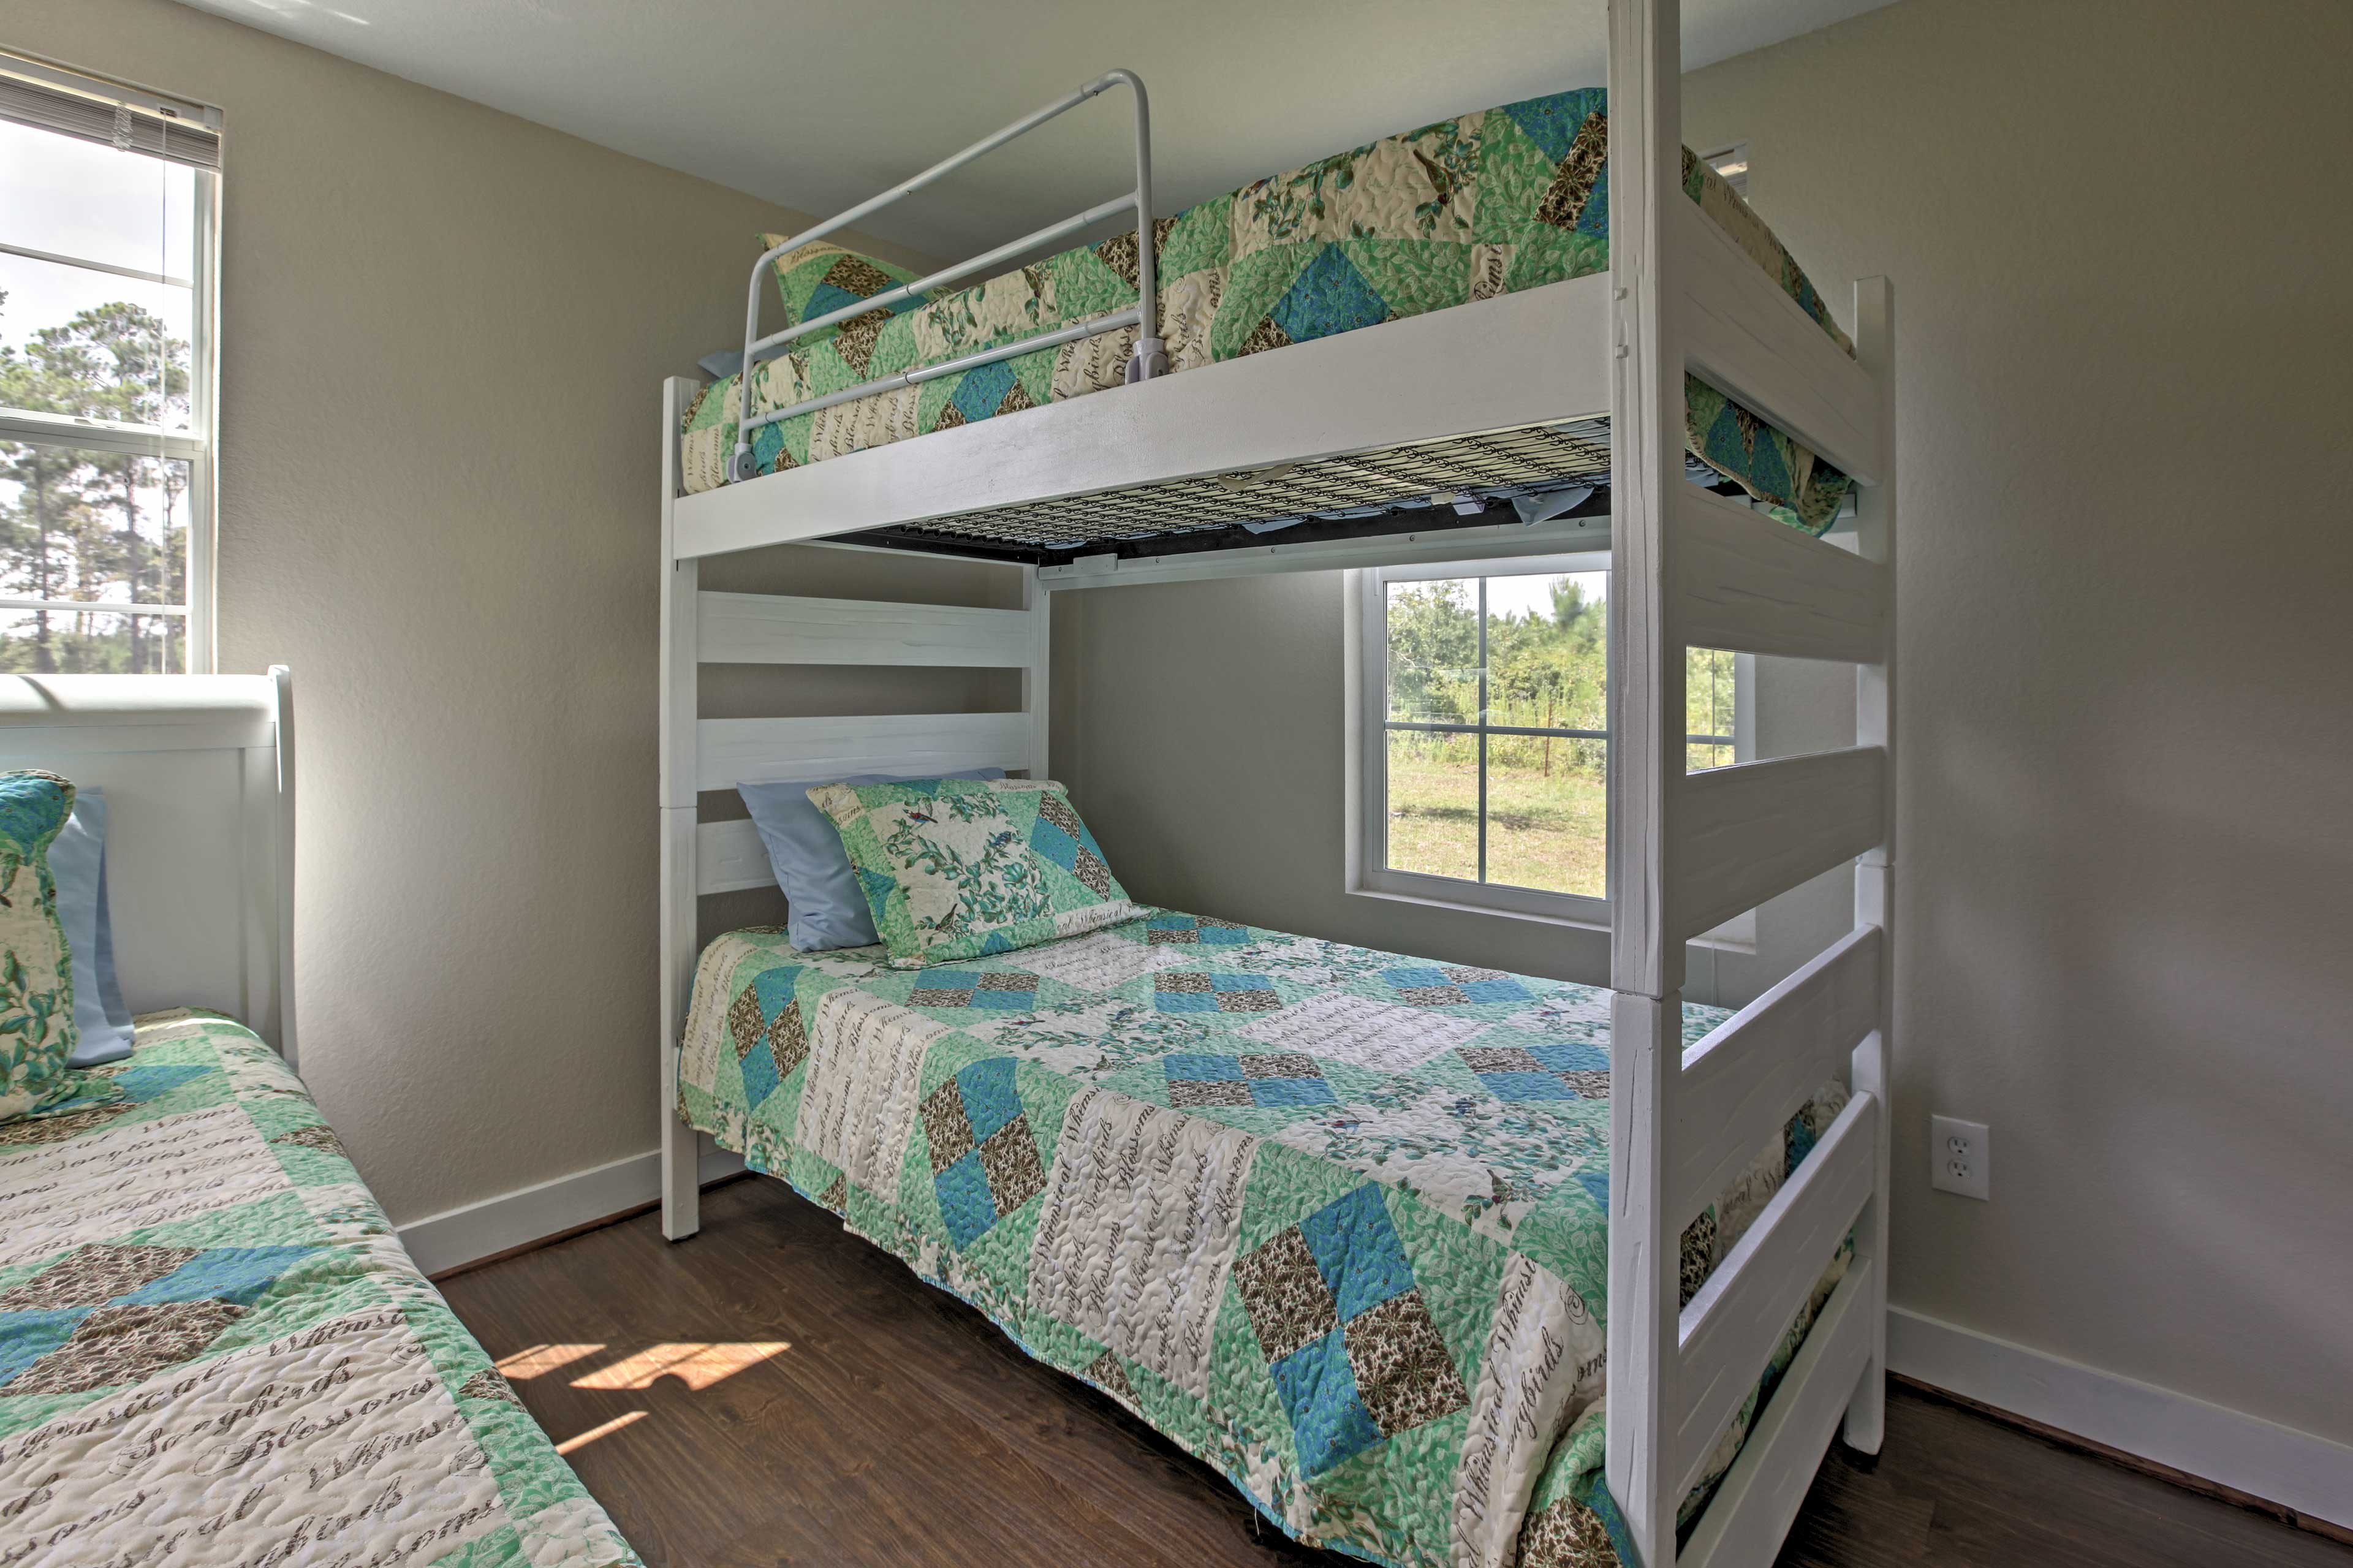 An additional twin-over-twin bunk bed is available for the little ones.